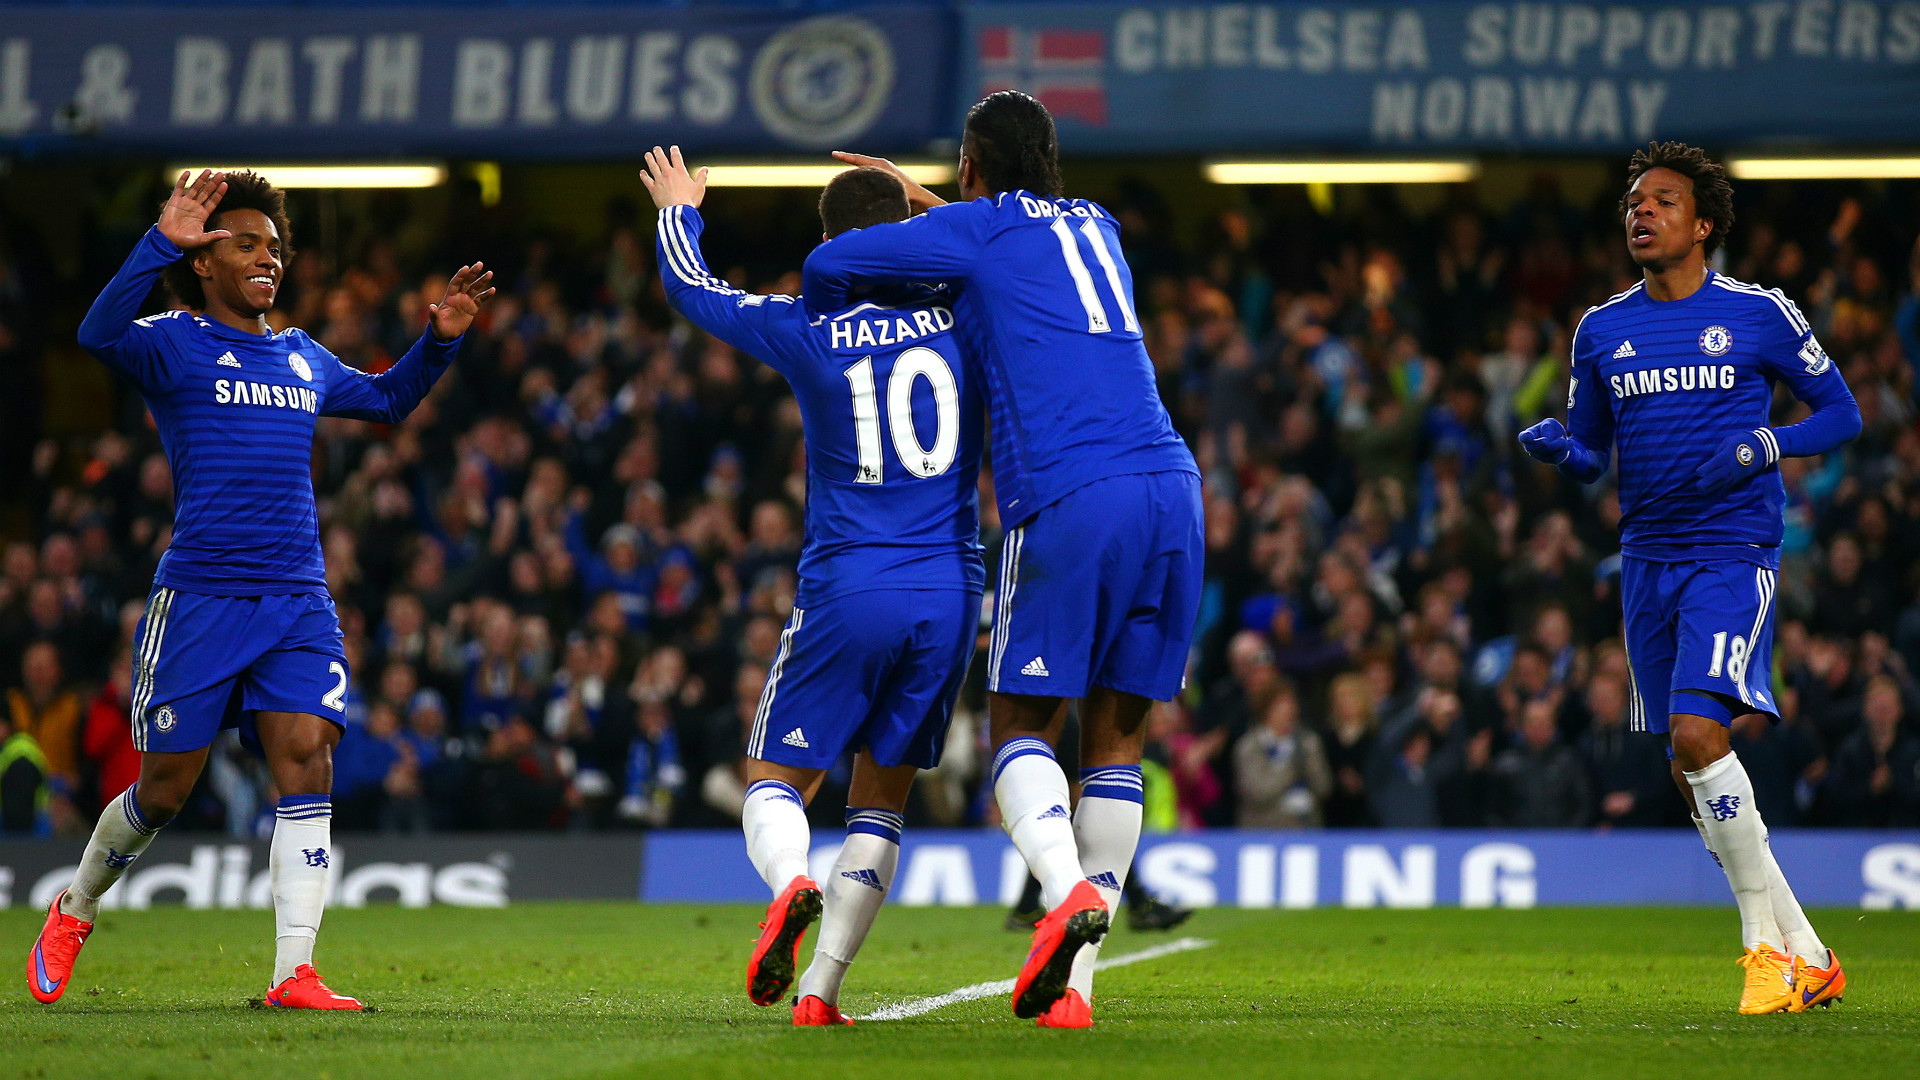 'You have to come to Chelsea' - Drogba lured Hazard to the Premier League as Gervinho played go-between